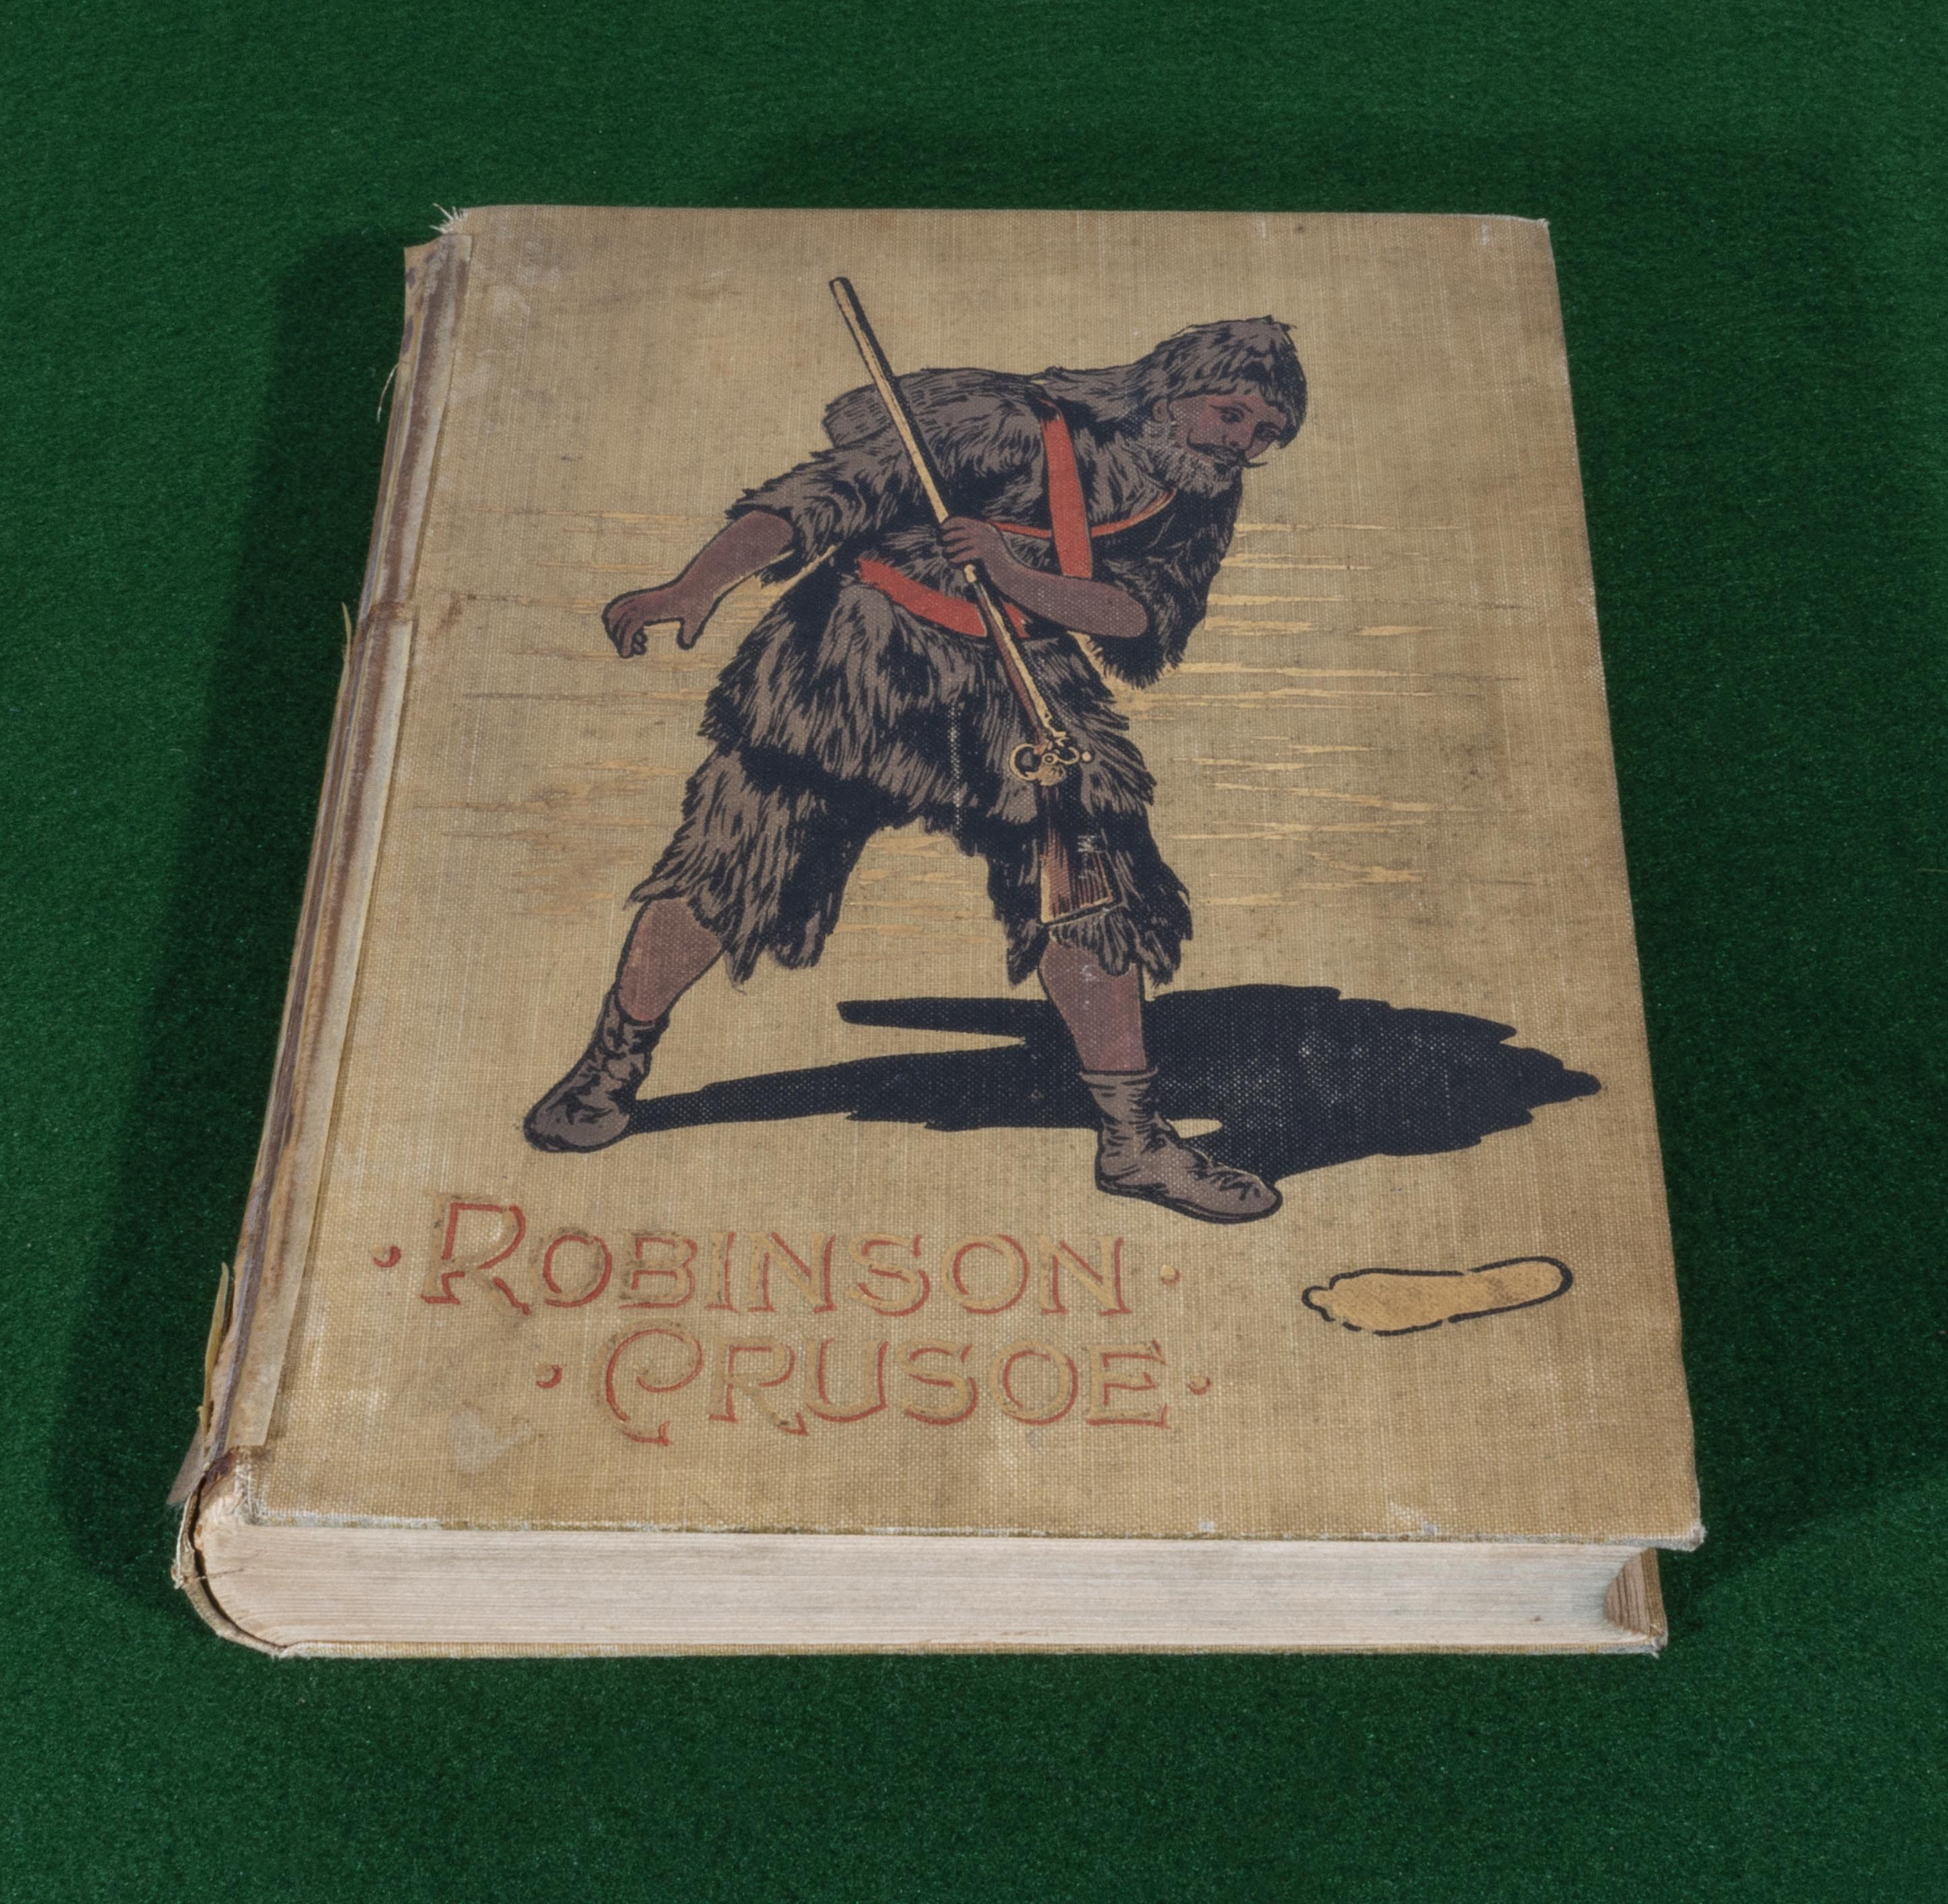 Lot 56 - Robinson Crusoe by Daniel Defoe, illustrated by Walter Paget, published by McLouglin Brothers New